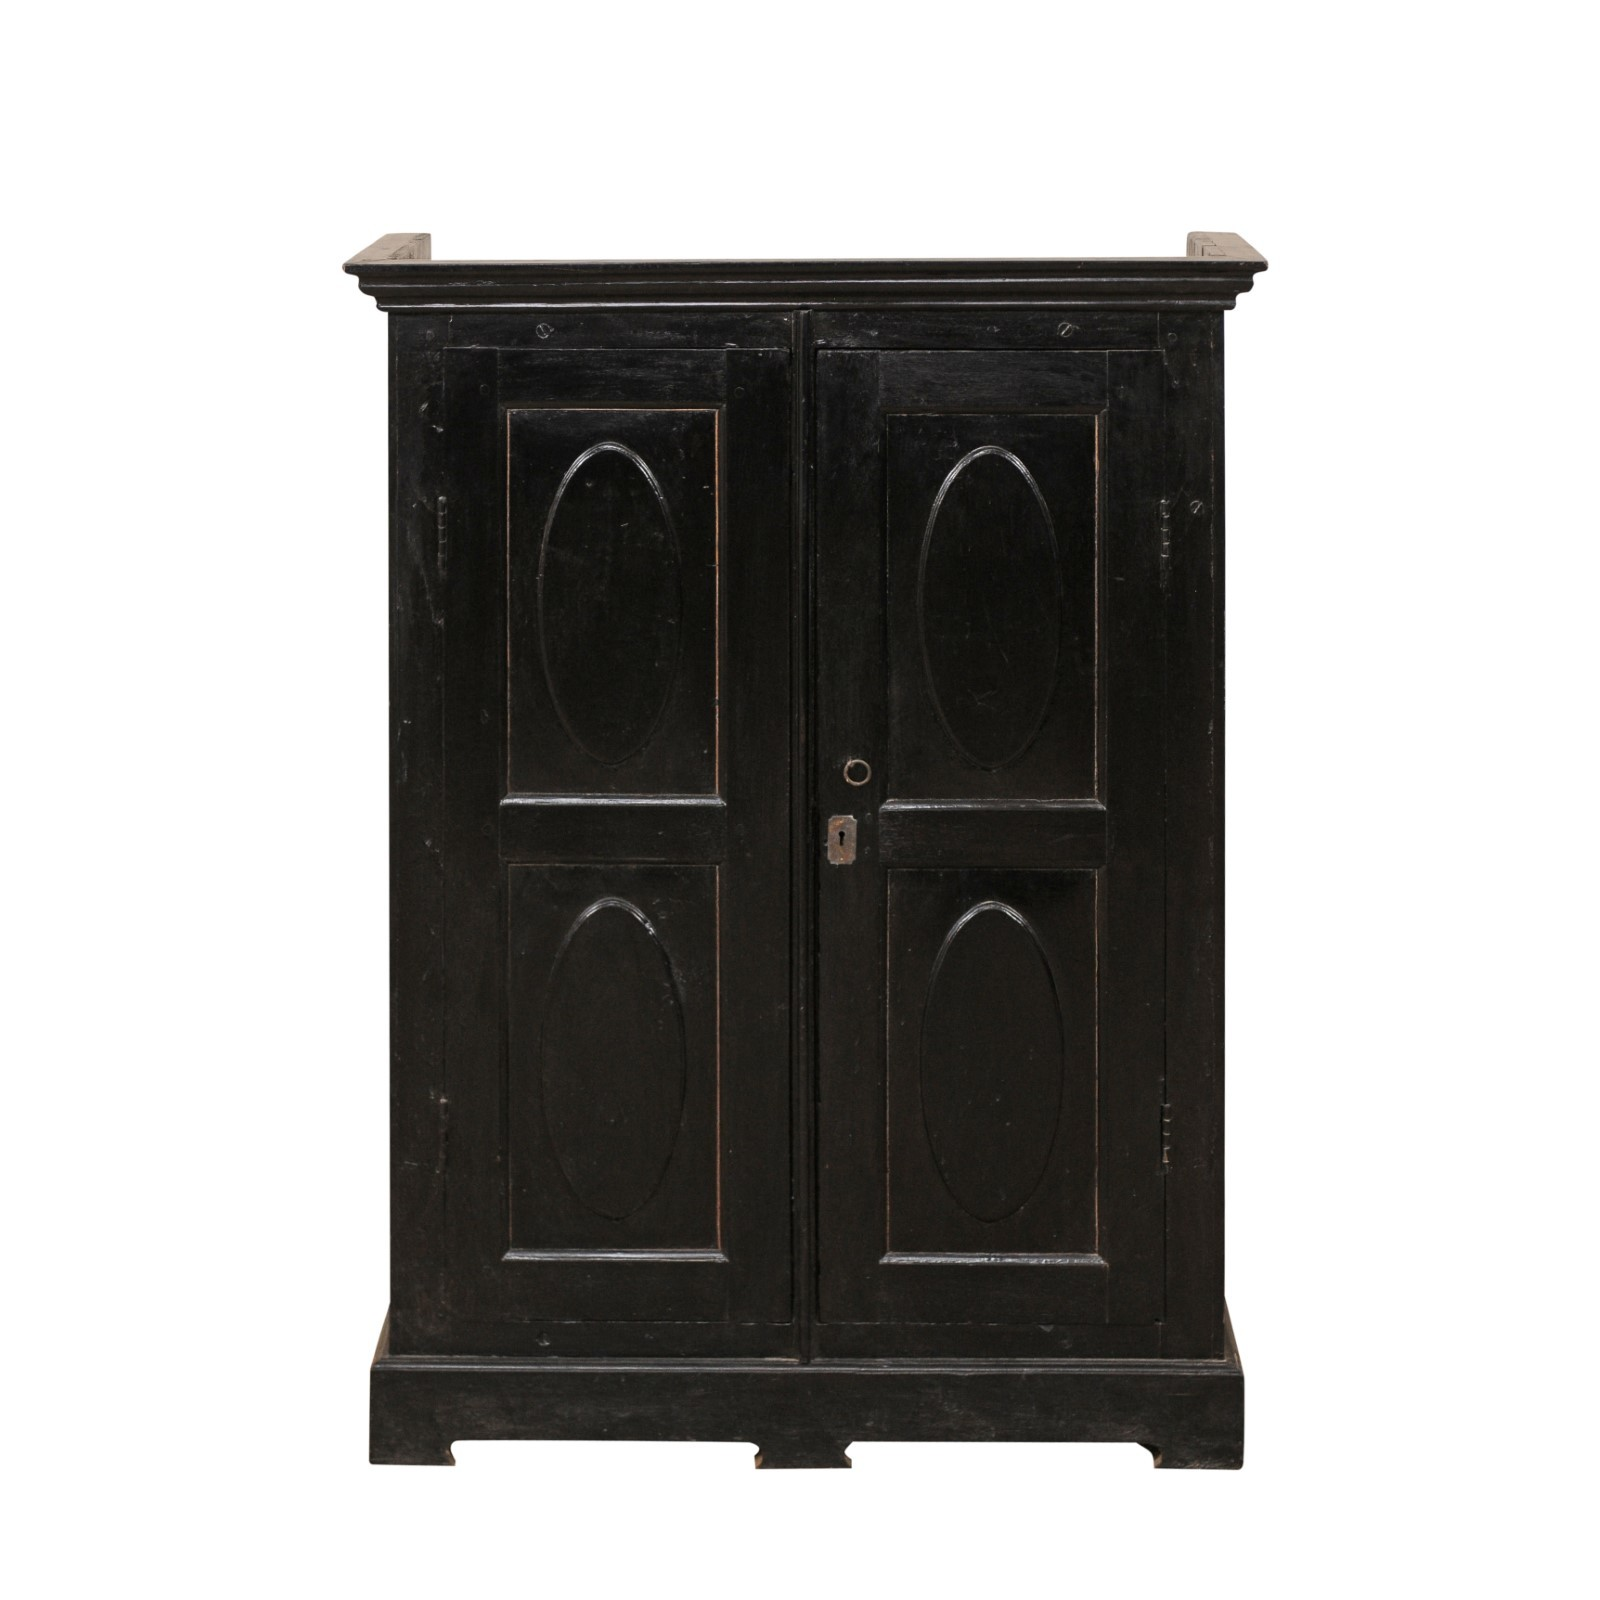 British Colonial Small-Sized Cabinet